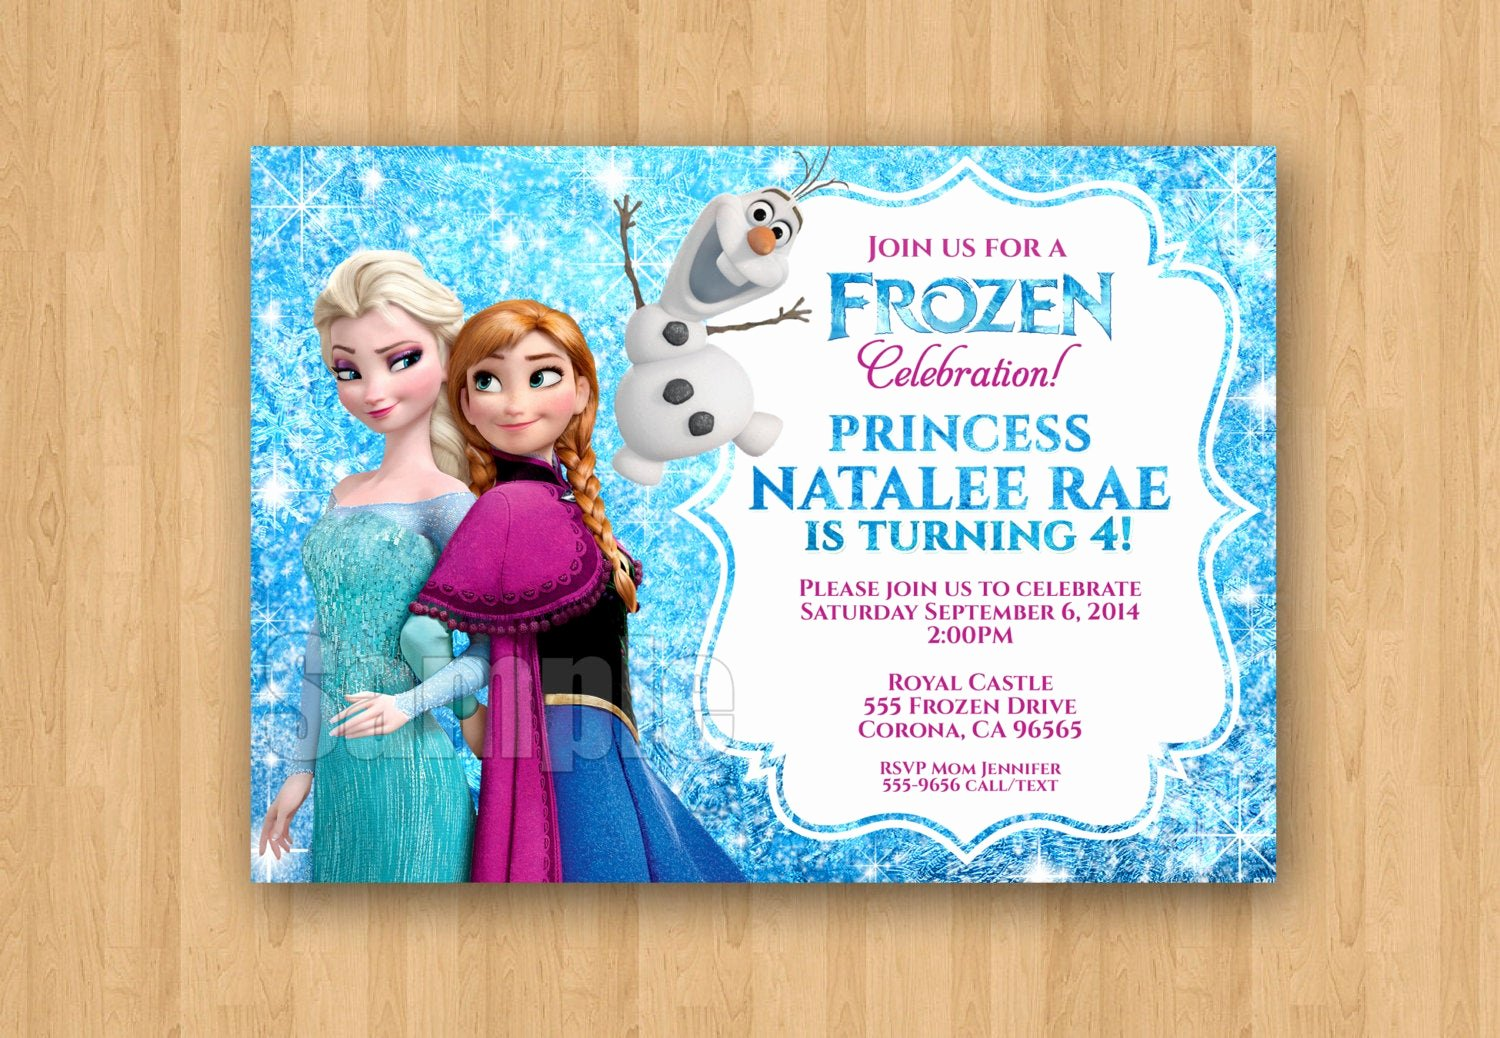 Frozen Birthday Invitations Wording Awesome Frozen Anna Elsa Movie Birthday Party Personalized Invitation